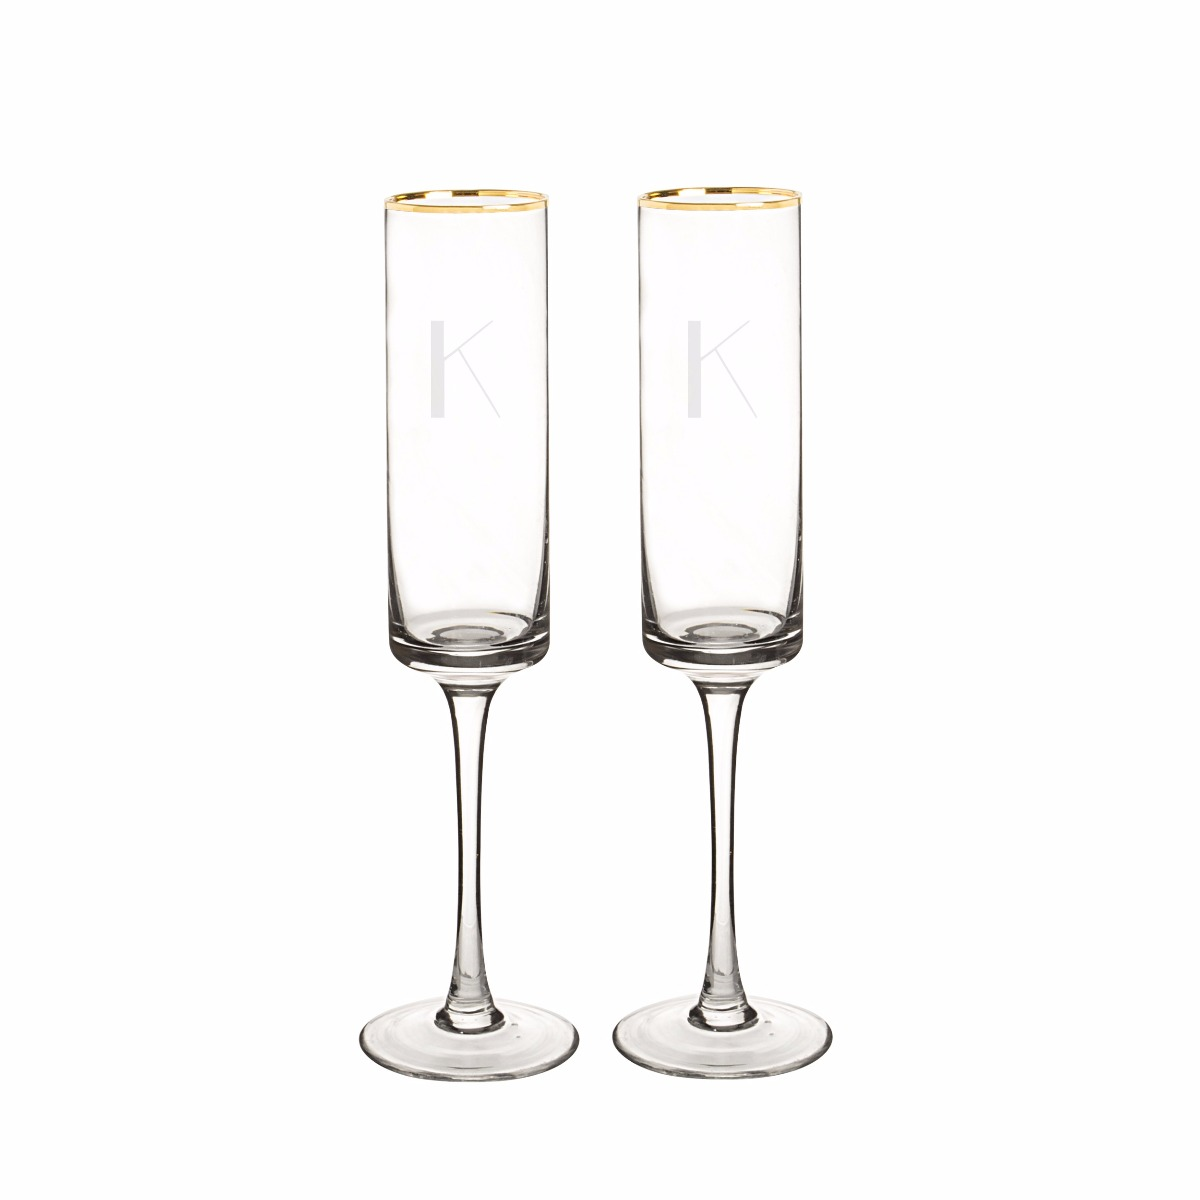 Personalized Gold Rim Champagne Flutes (set of 2)